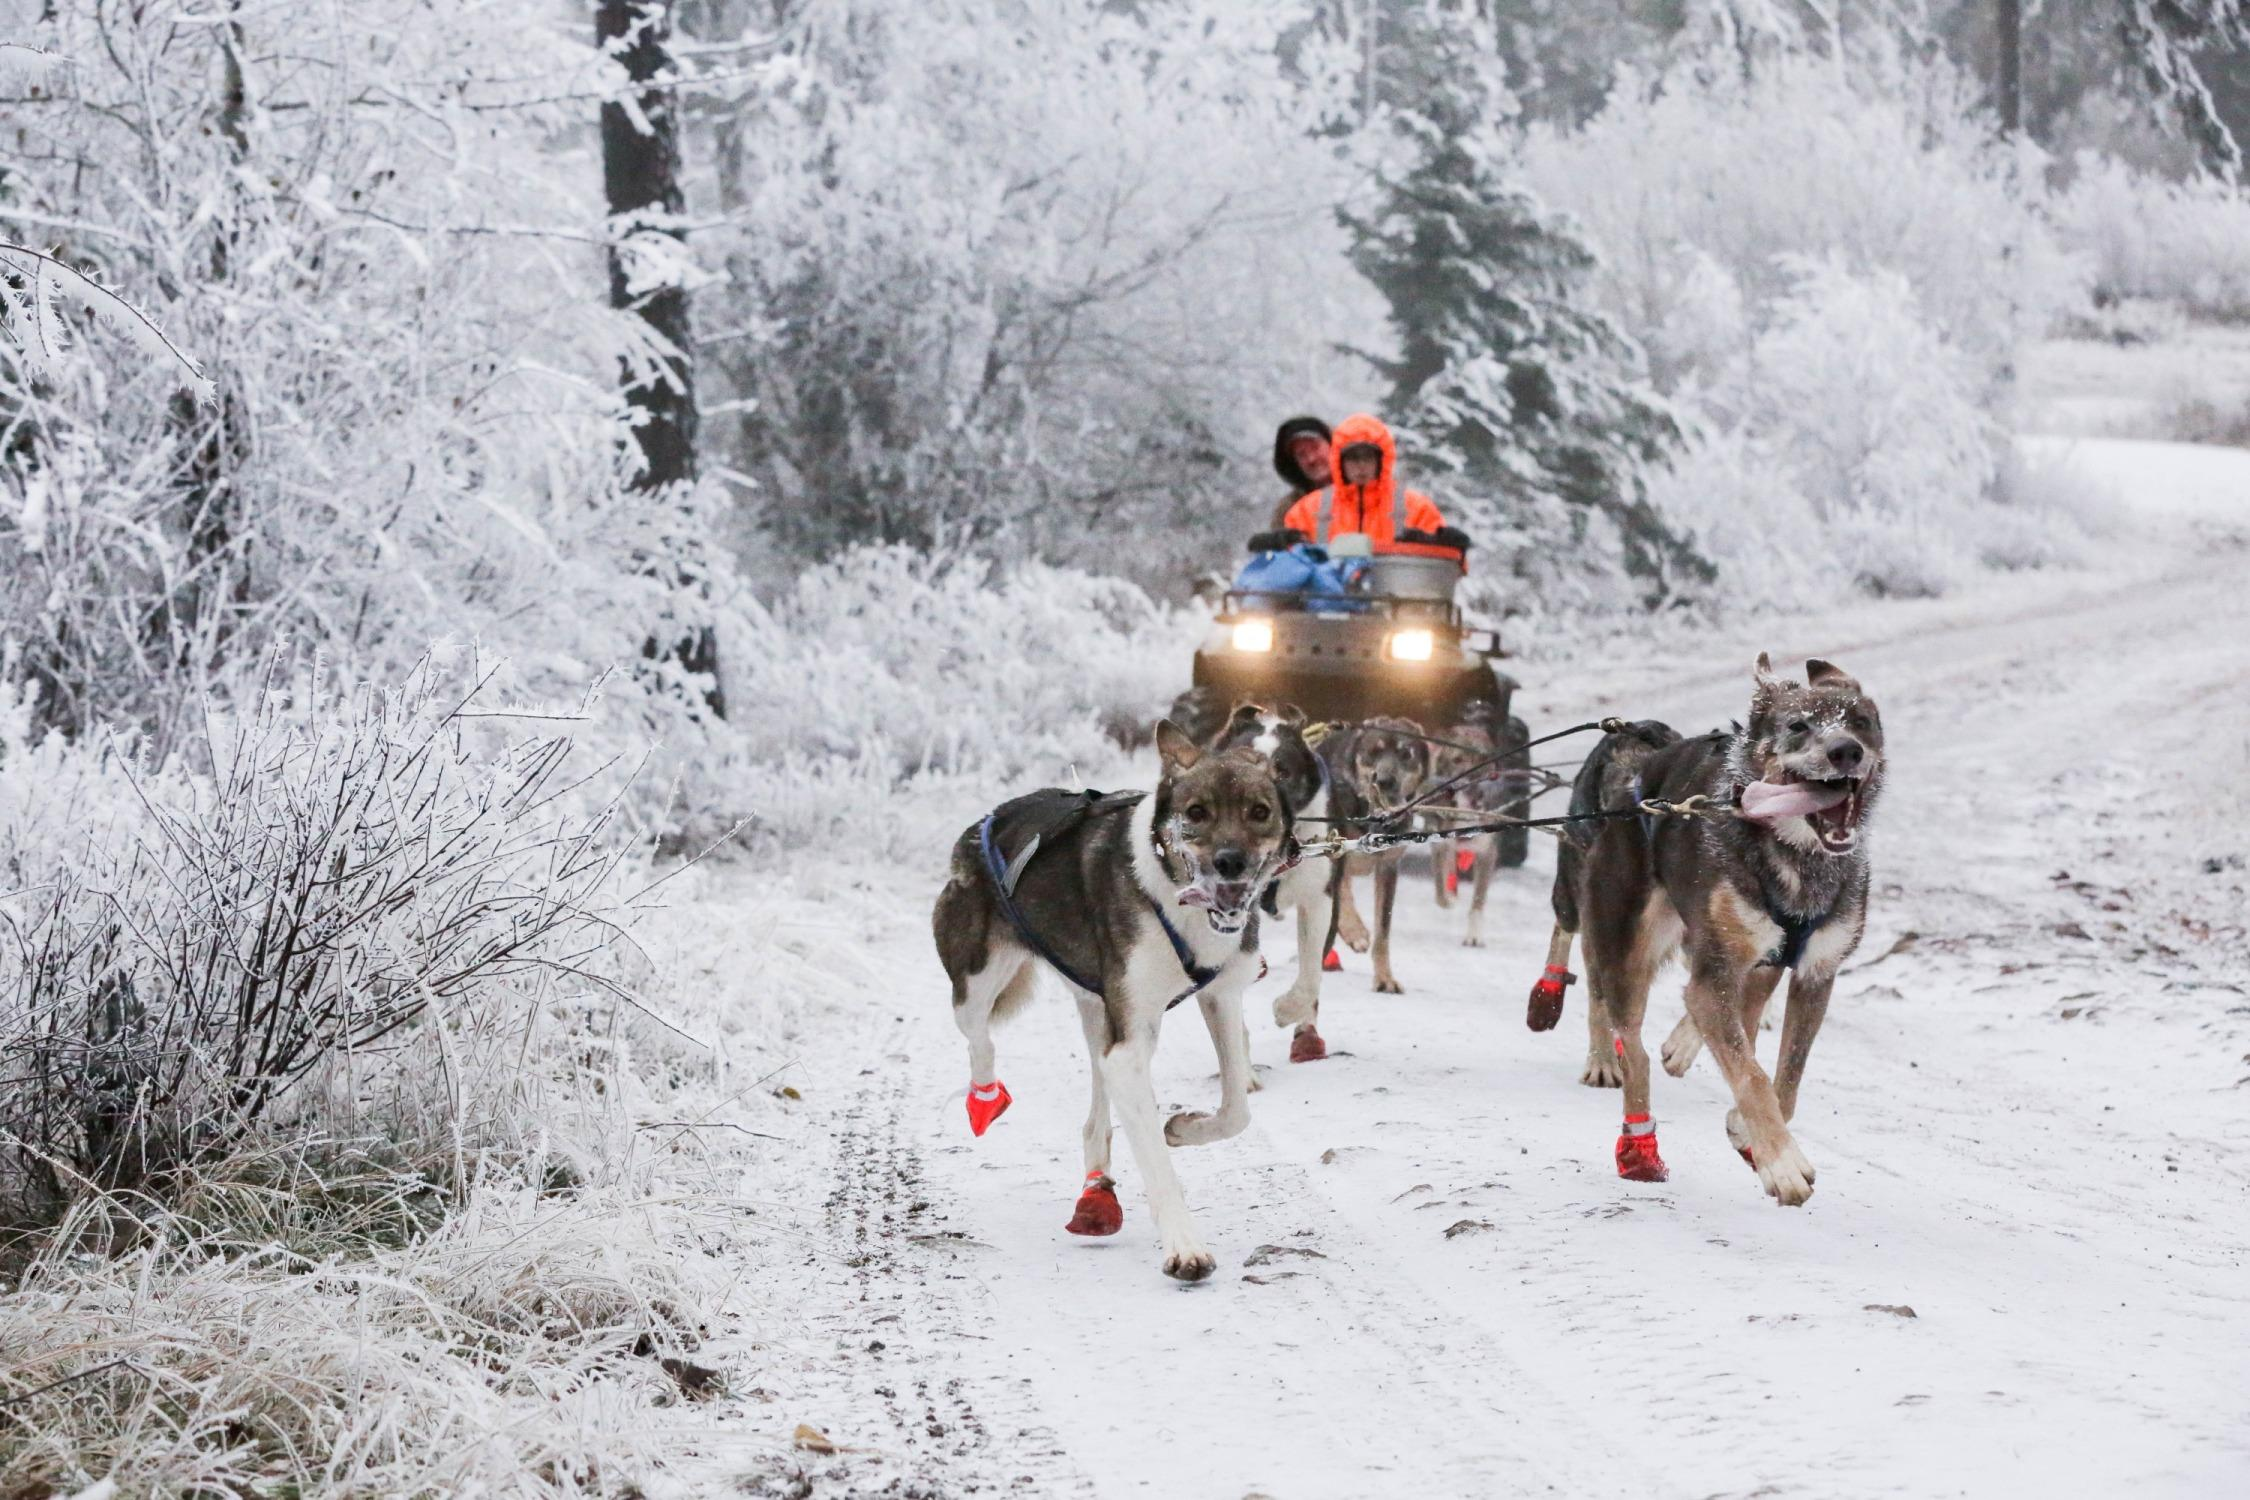 Sharon Nuckols and Tim Curley guide their team down a frosty forest road in Mosier, Oregon.